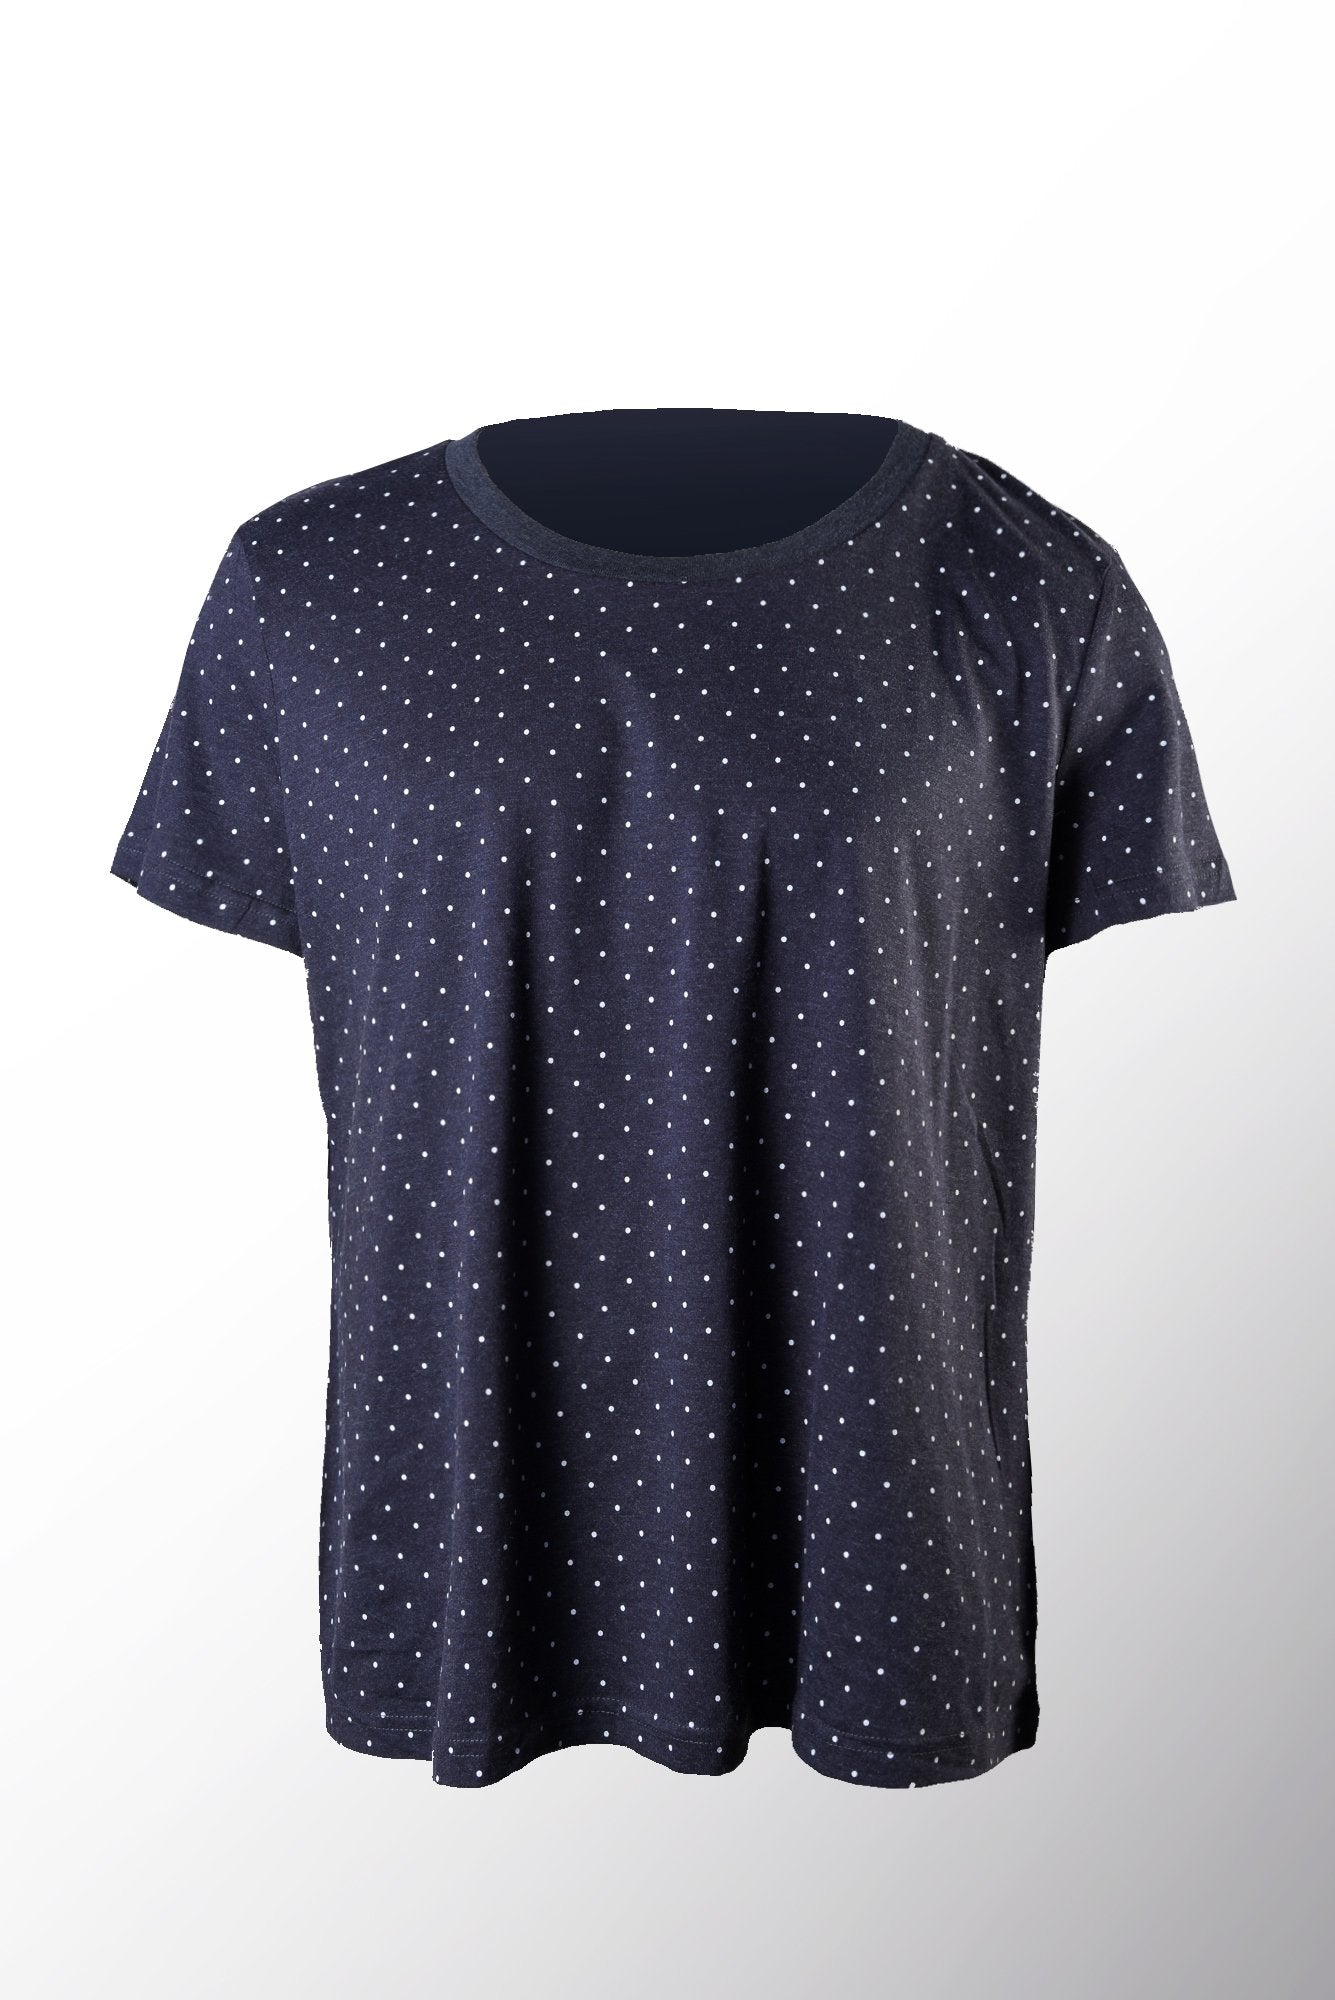 Our Casual Clothing Range Is Ideal For Your Minimalist Wardrobe